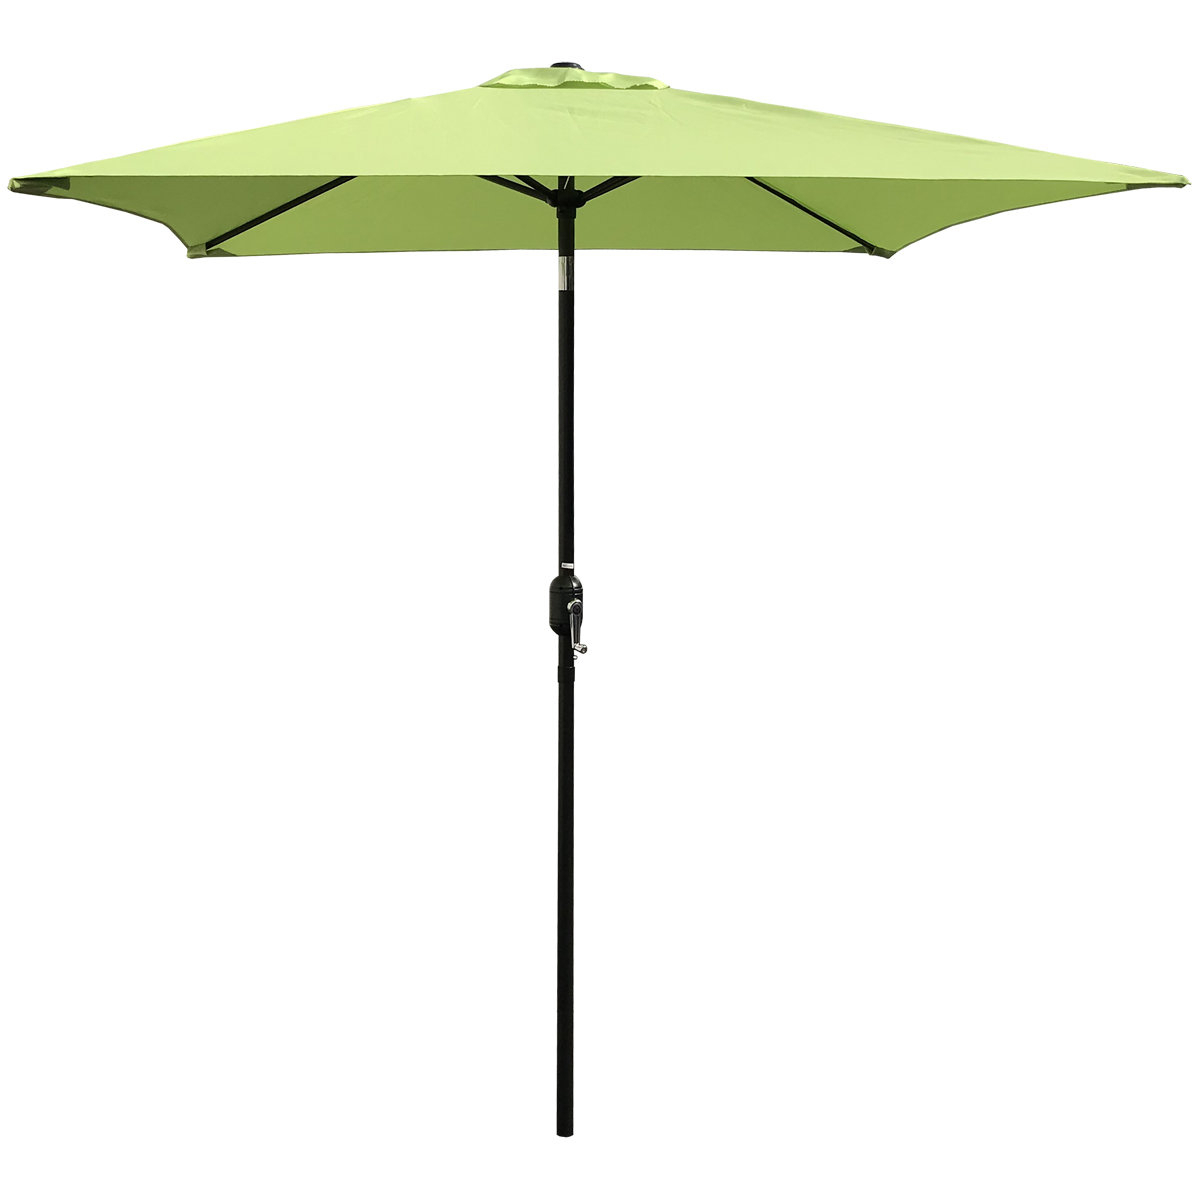 Recent Delaplaine Market Umbrellas In Bradford Patio 6.5' Square Market Umbrella (Gallery 6 of 20)